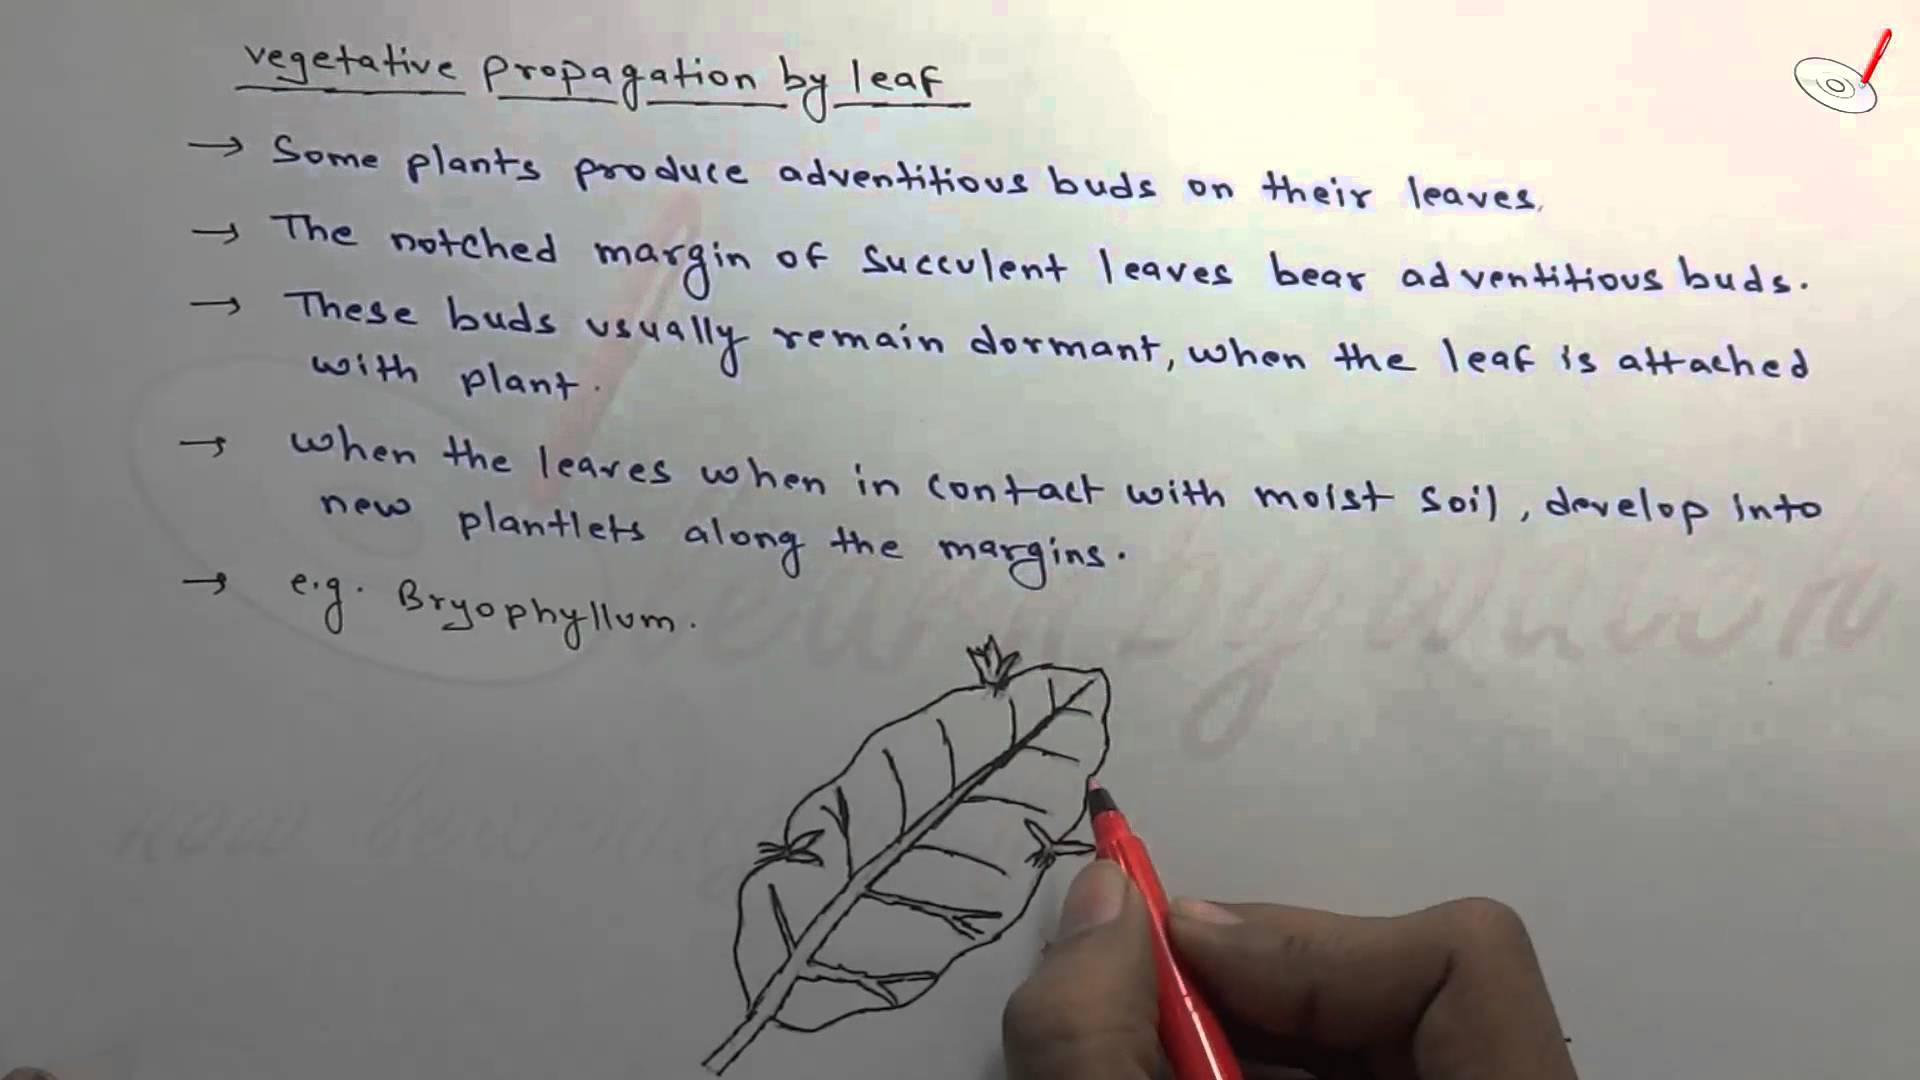 Vegetative Propogation By leaf